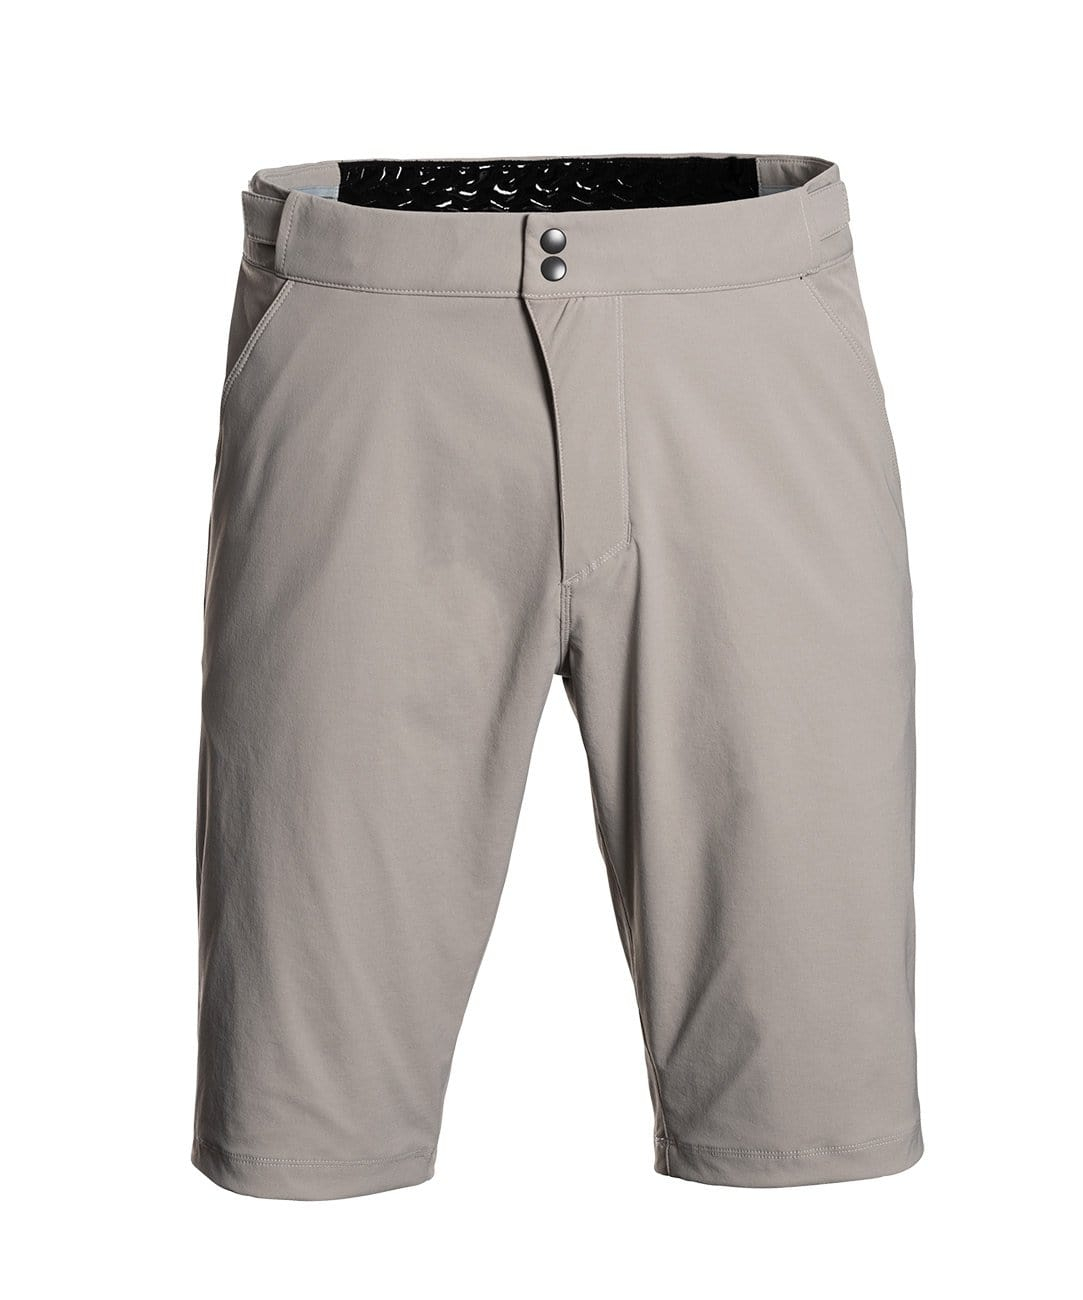 "Men's Cross Country 11.5"" Shorts"